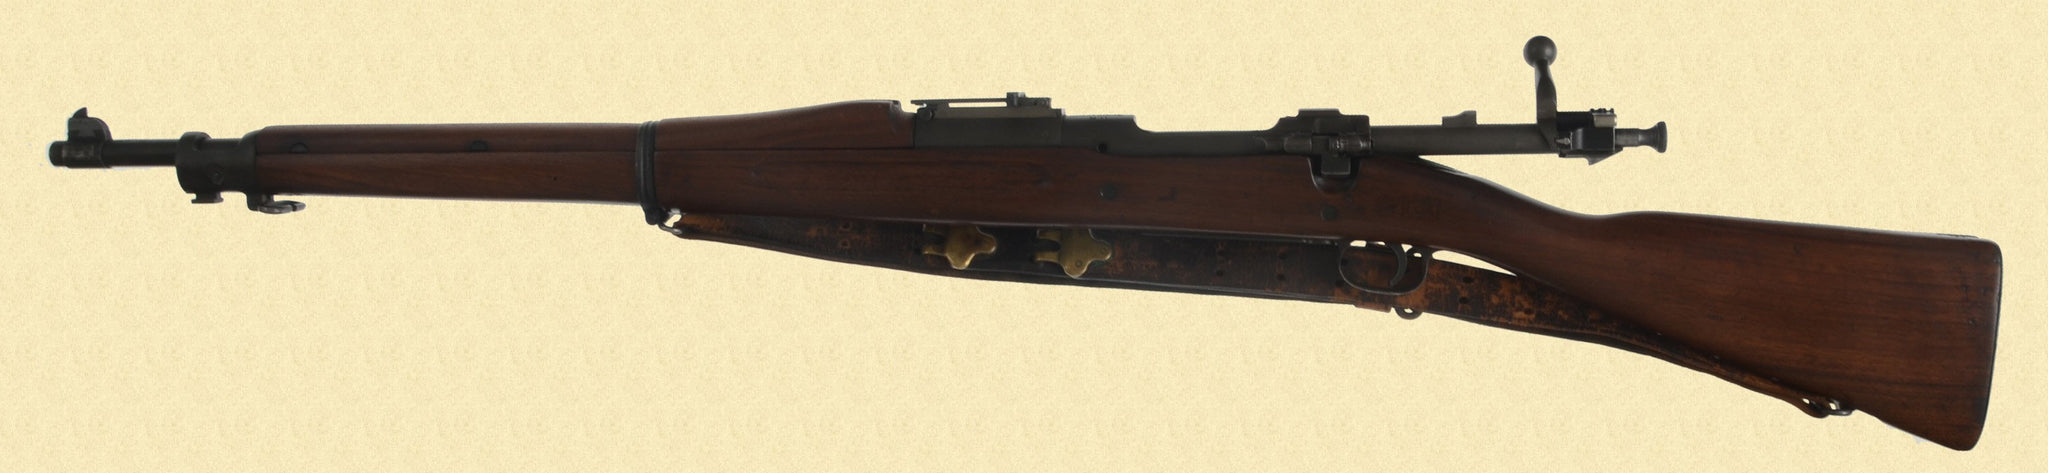 REMINGTON 1903